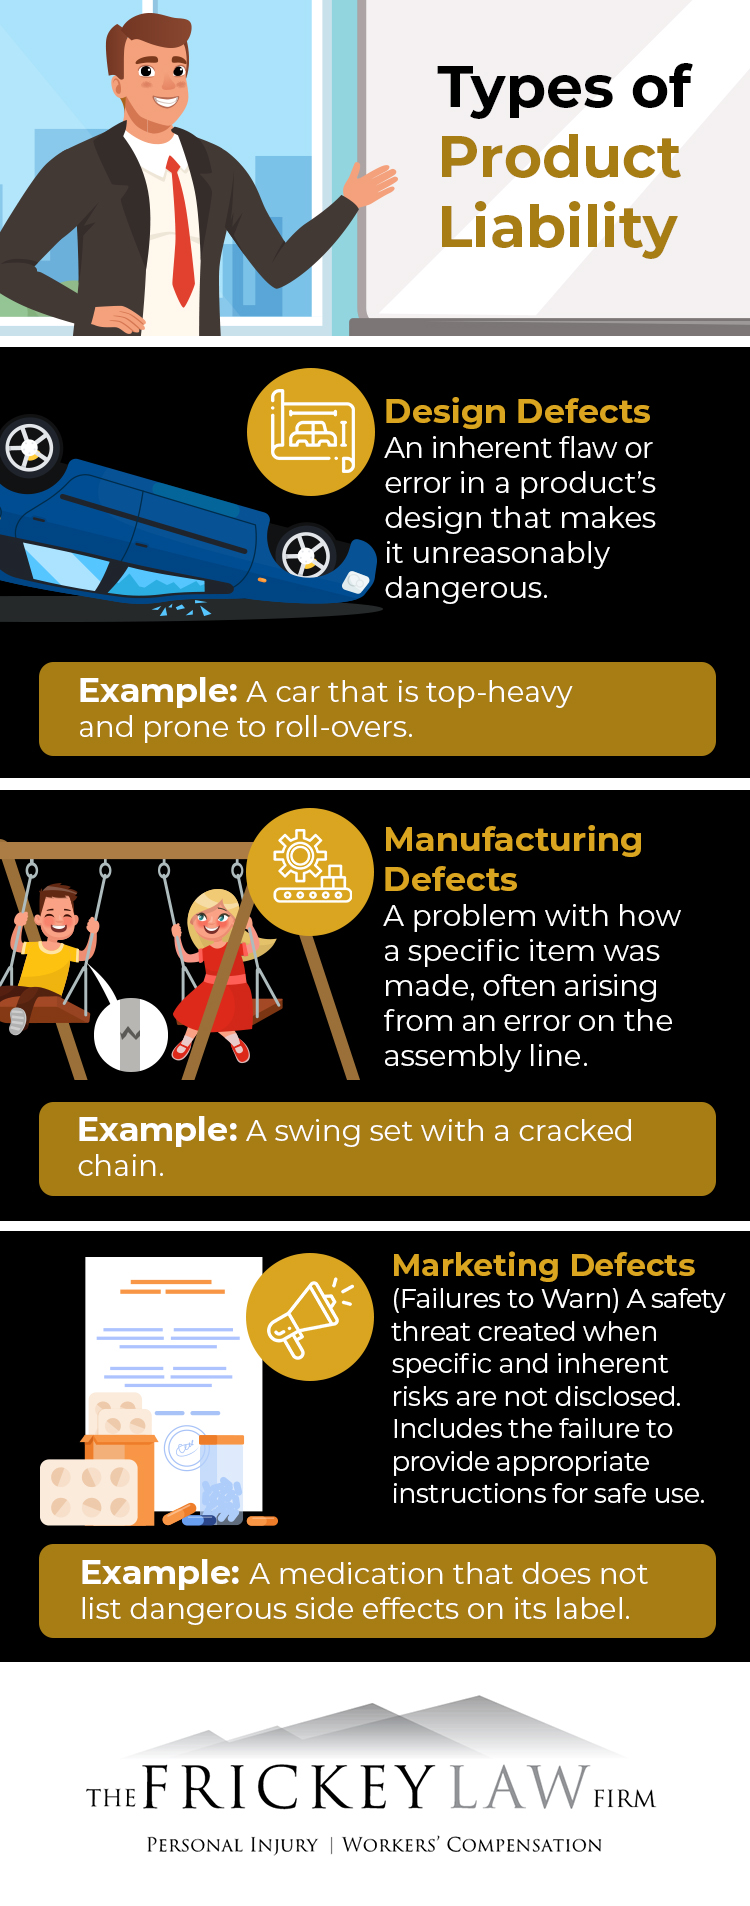 Types of product liability infographic